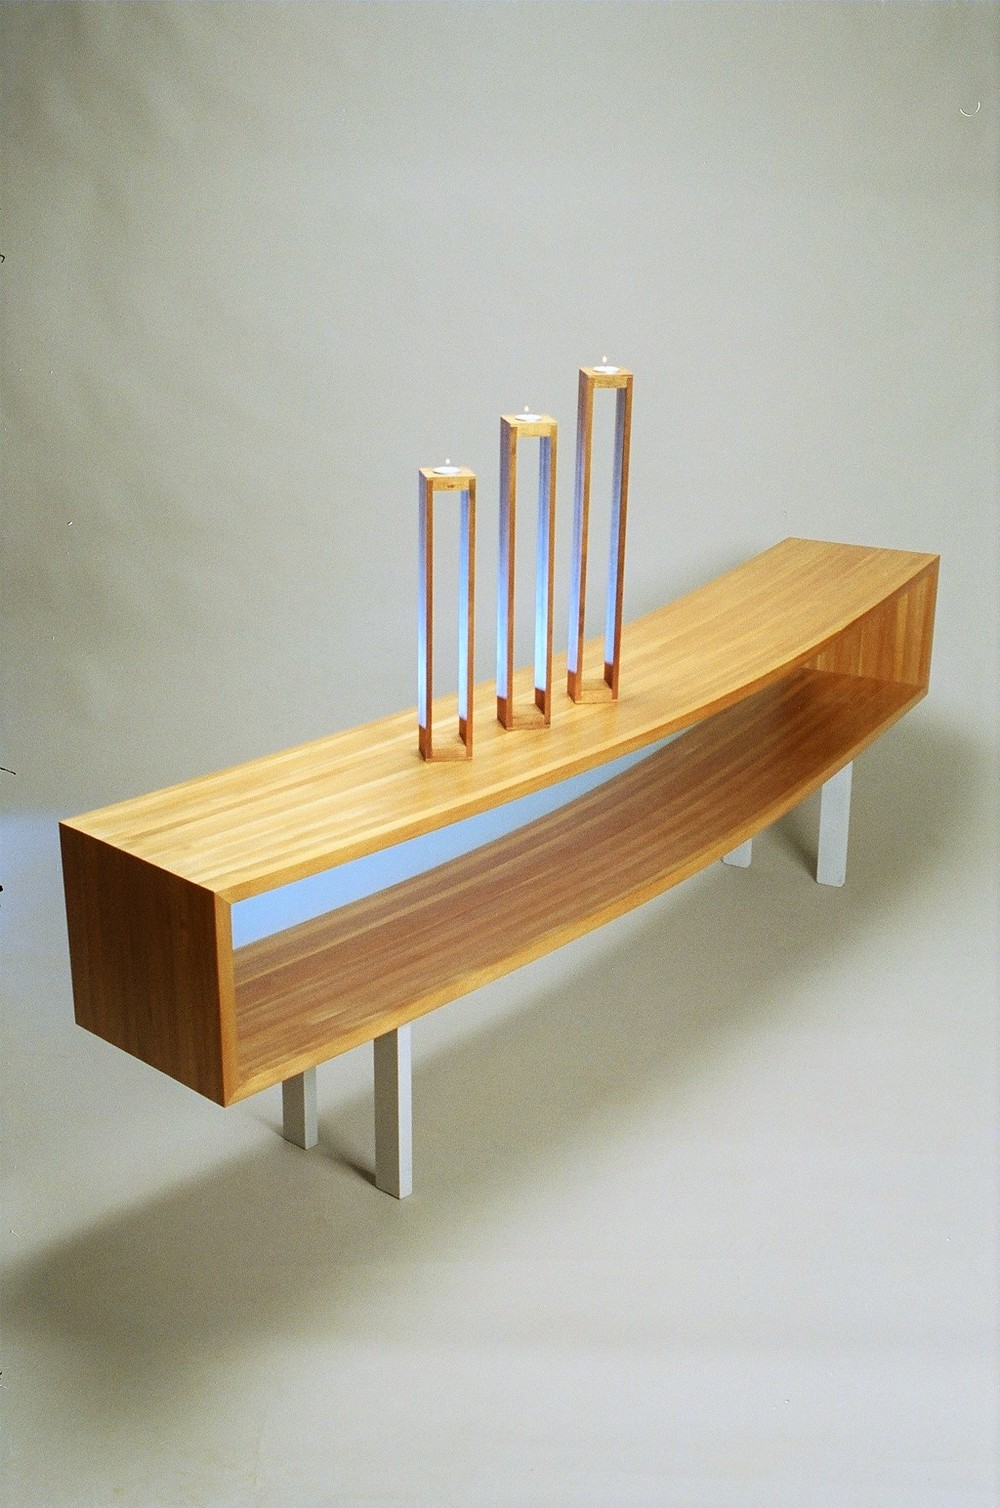 sideboard+and+candleholders.jpg